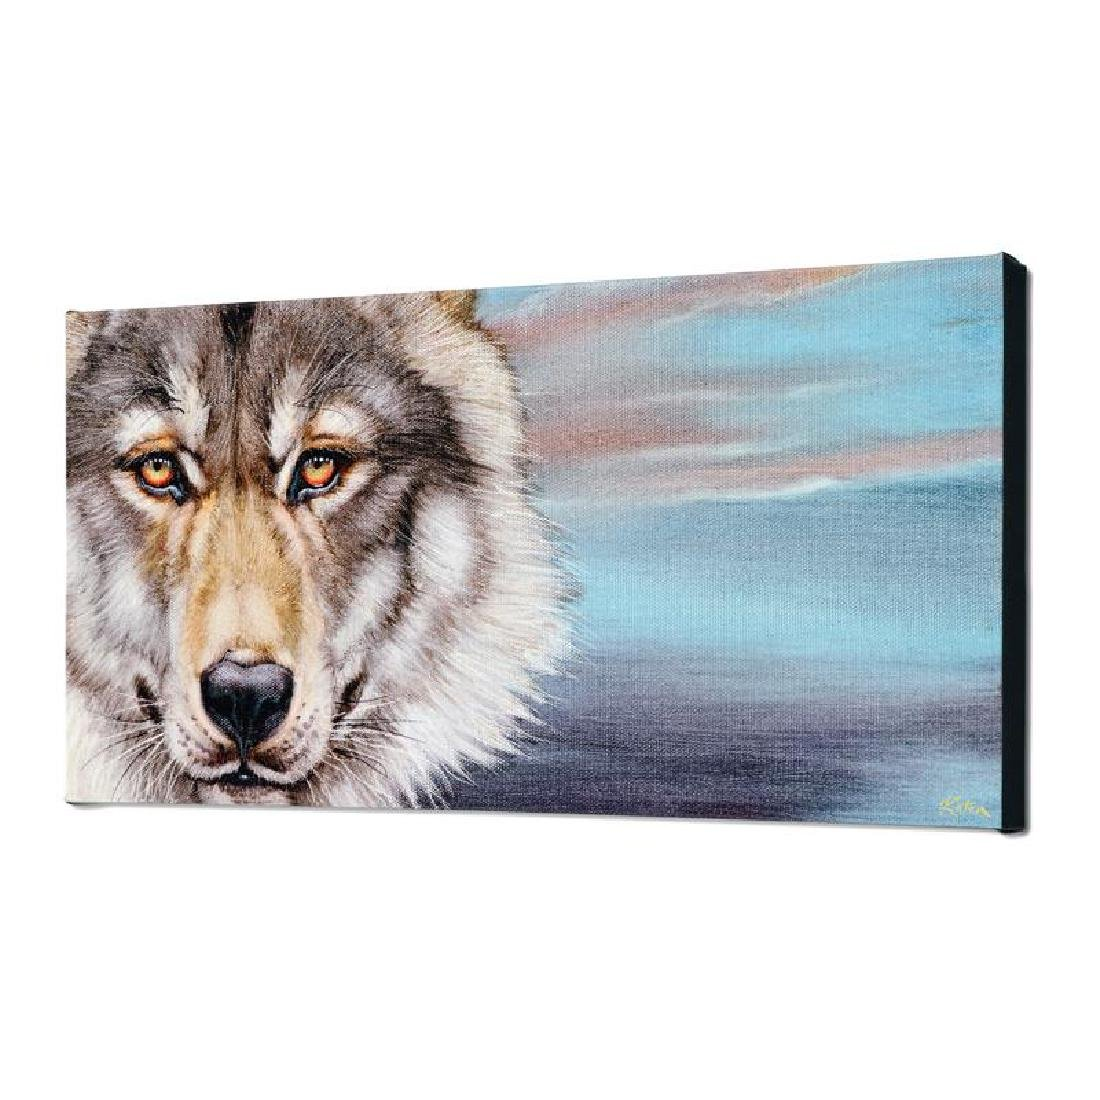 """Wolf"" Limited Edition Giclee on Canvas by Martin Katon - 4"